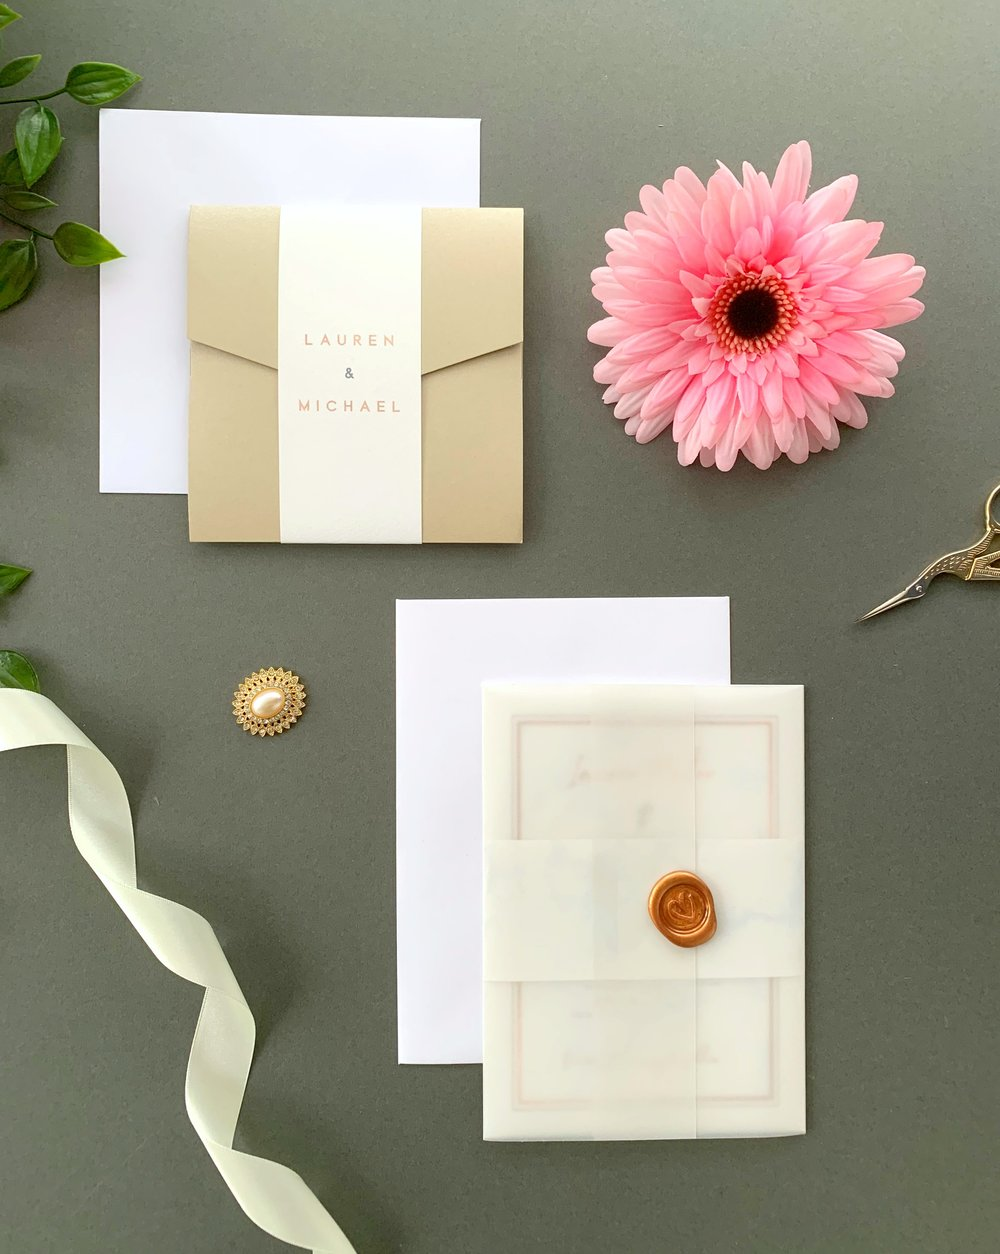 Chiswick Pocketfold Suite with Paper Belly Band, Invitation Suite with Paper Belly Band, Vellum Jacket and Copper Wax Seal